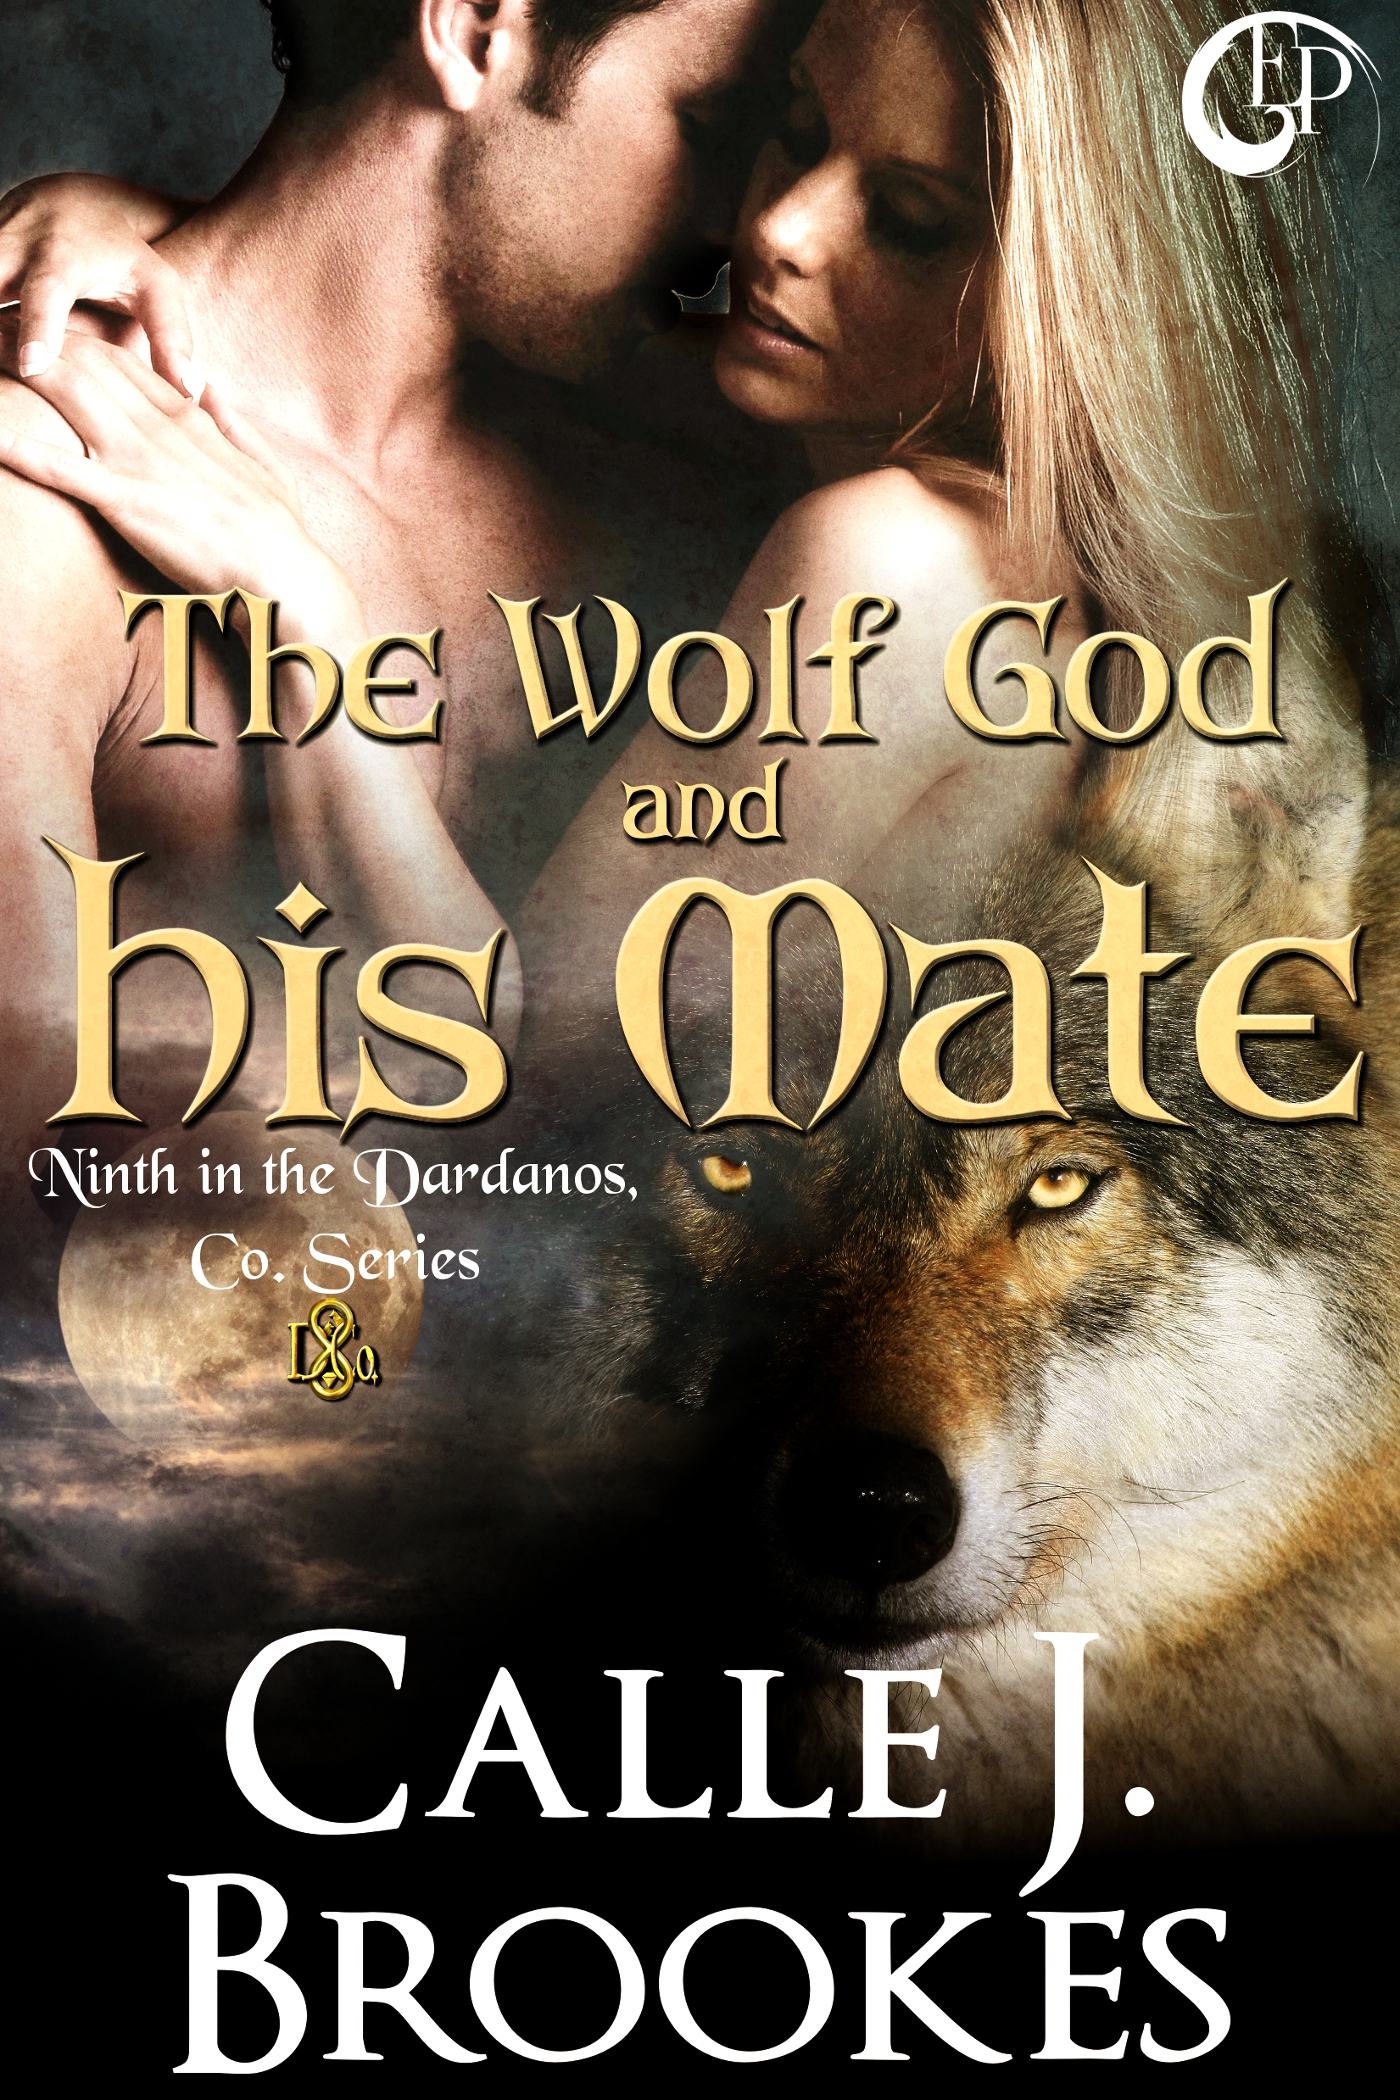 Calle J. Brookes - The Wolf God and His Mate